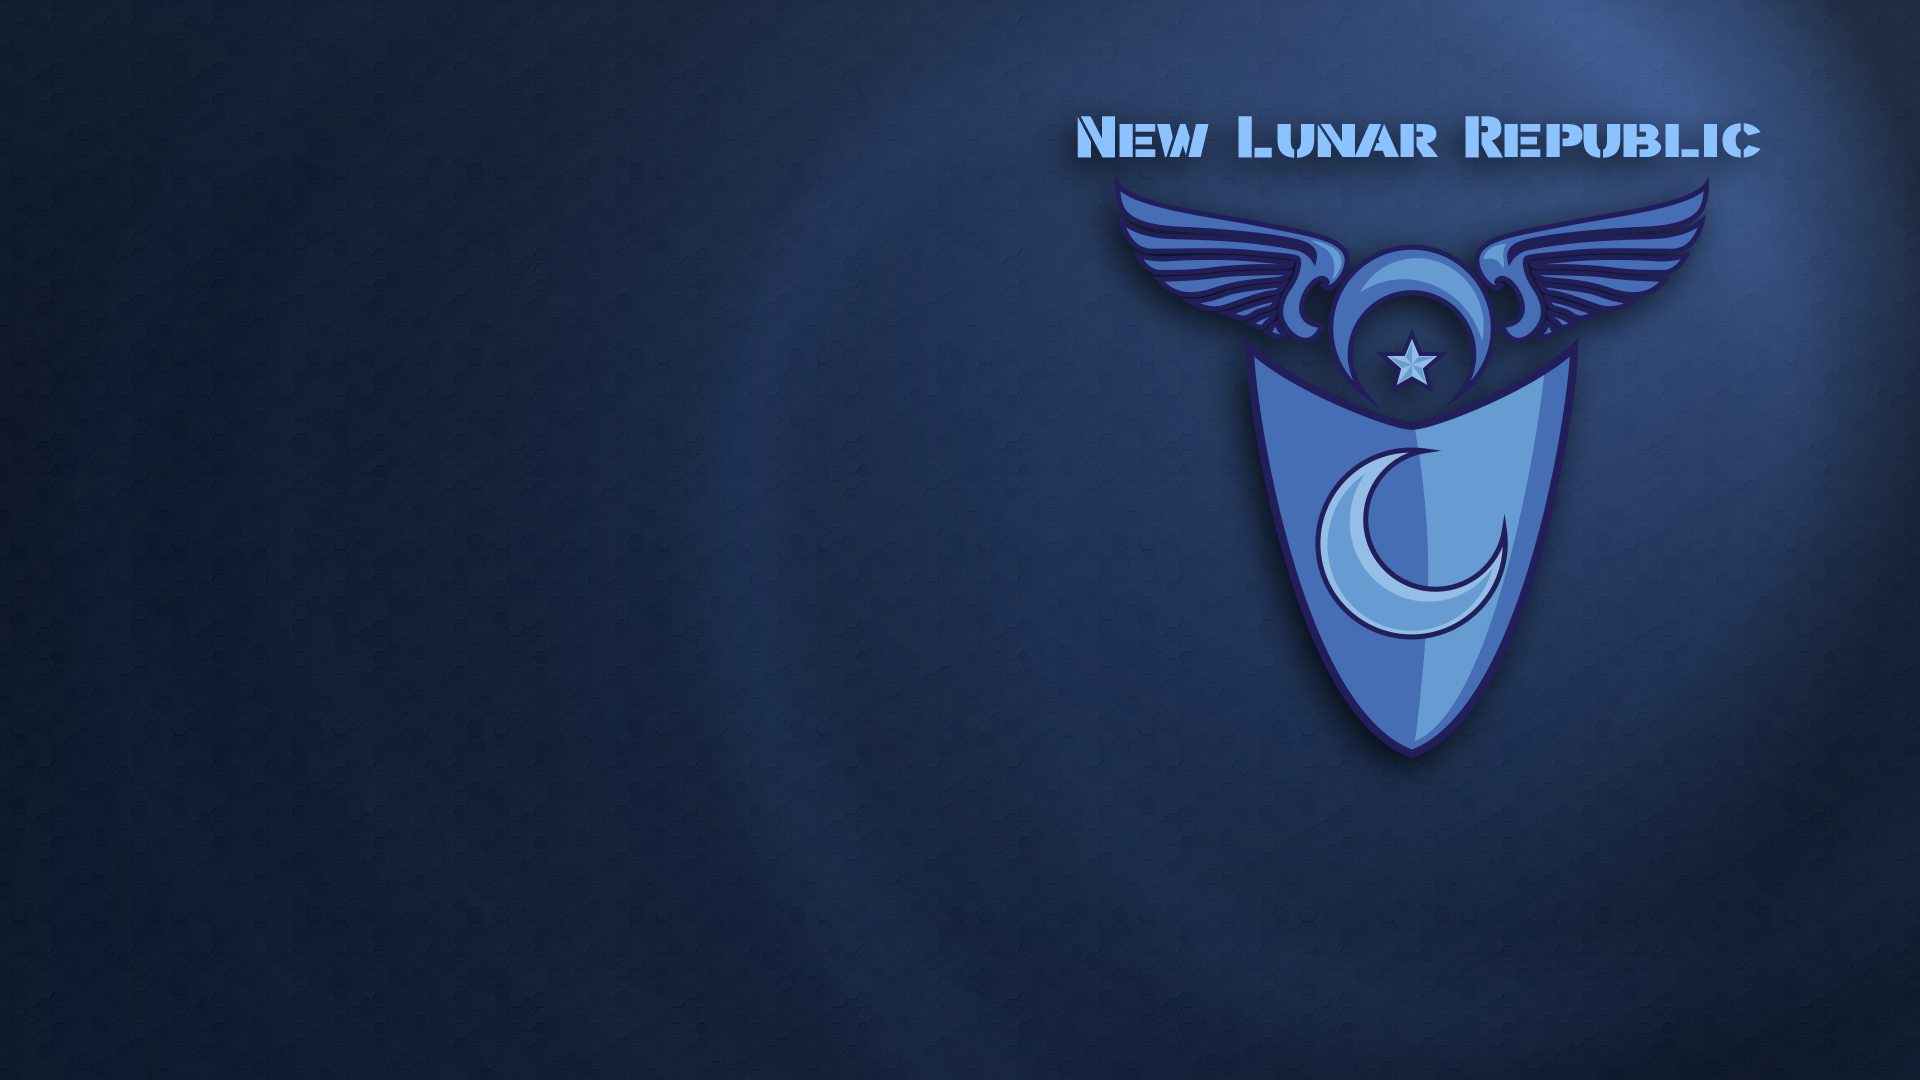 New Lunar Republic Wallpaper by Landmine752